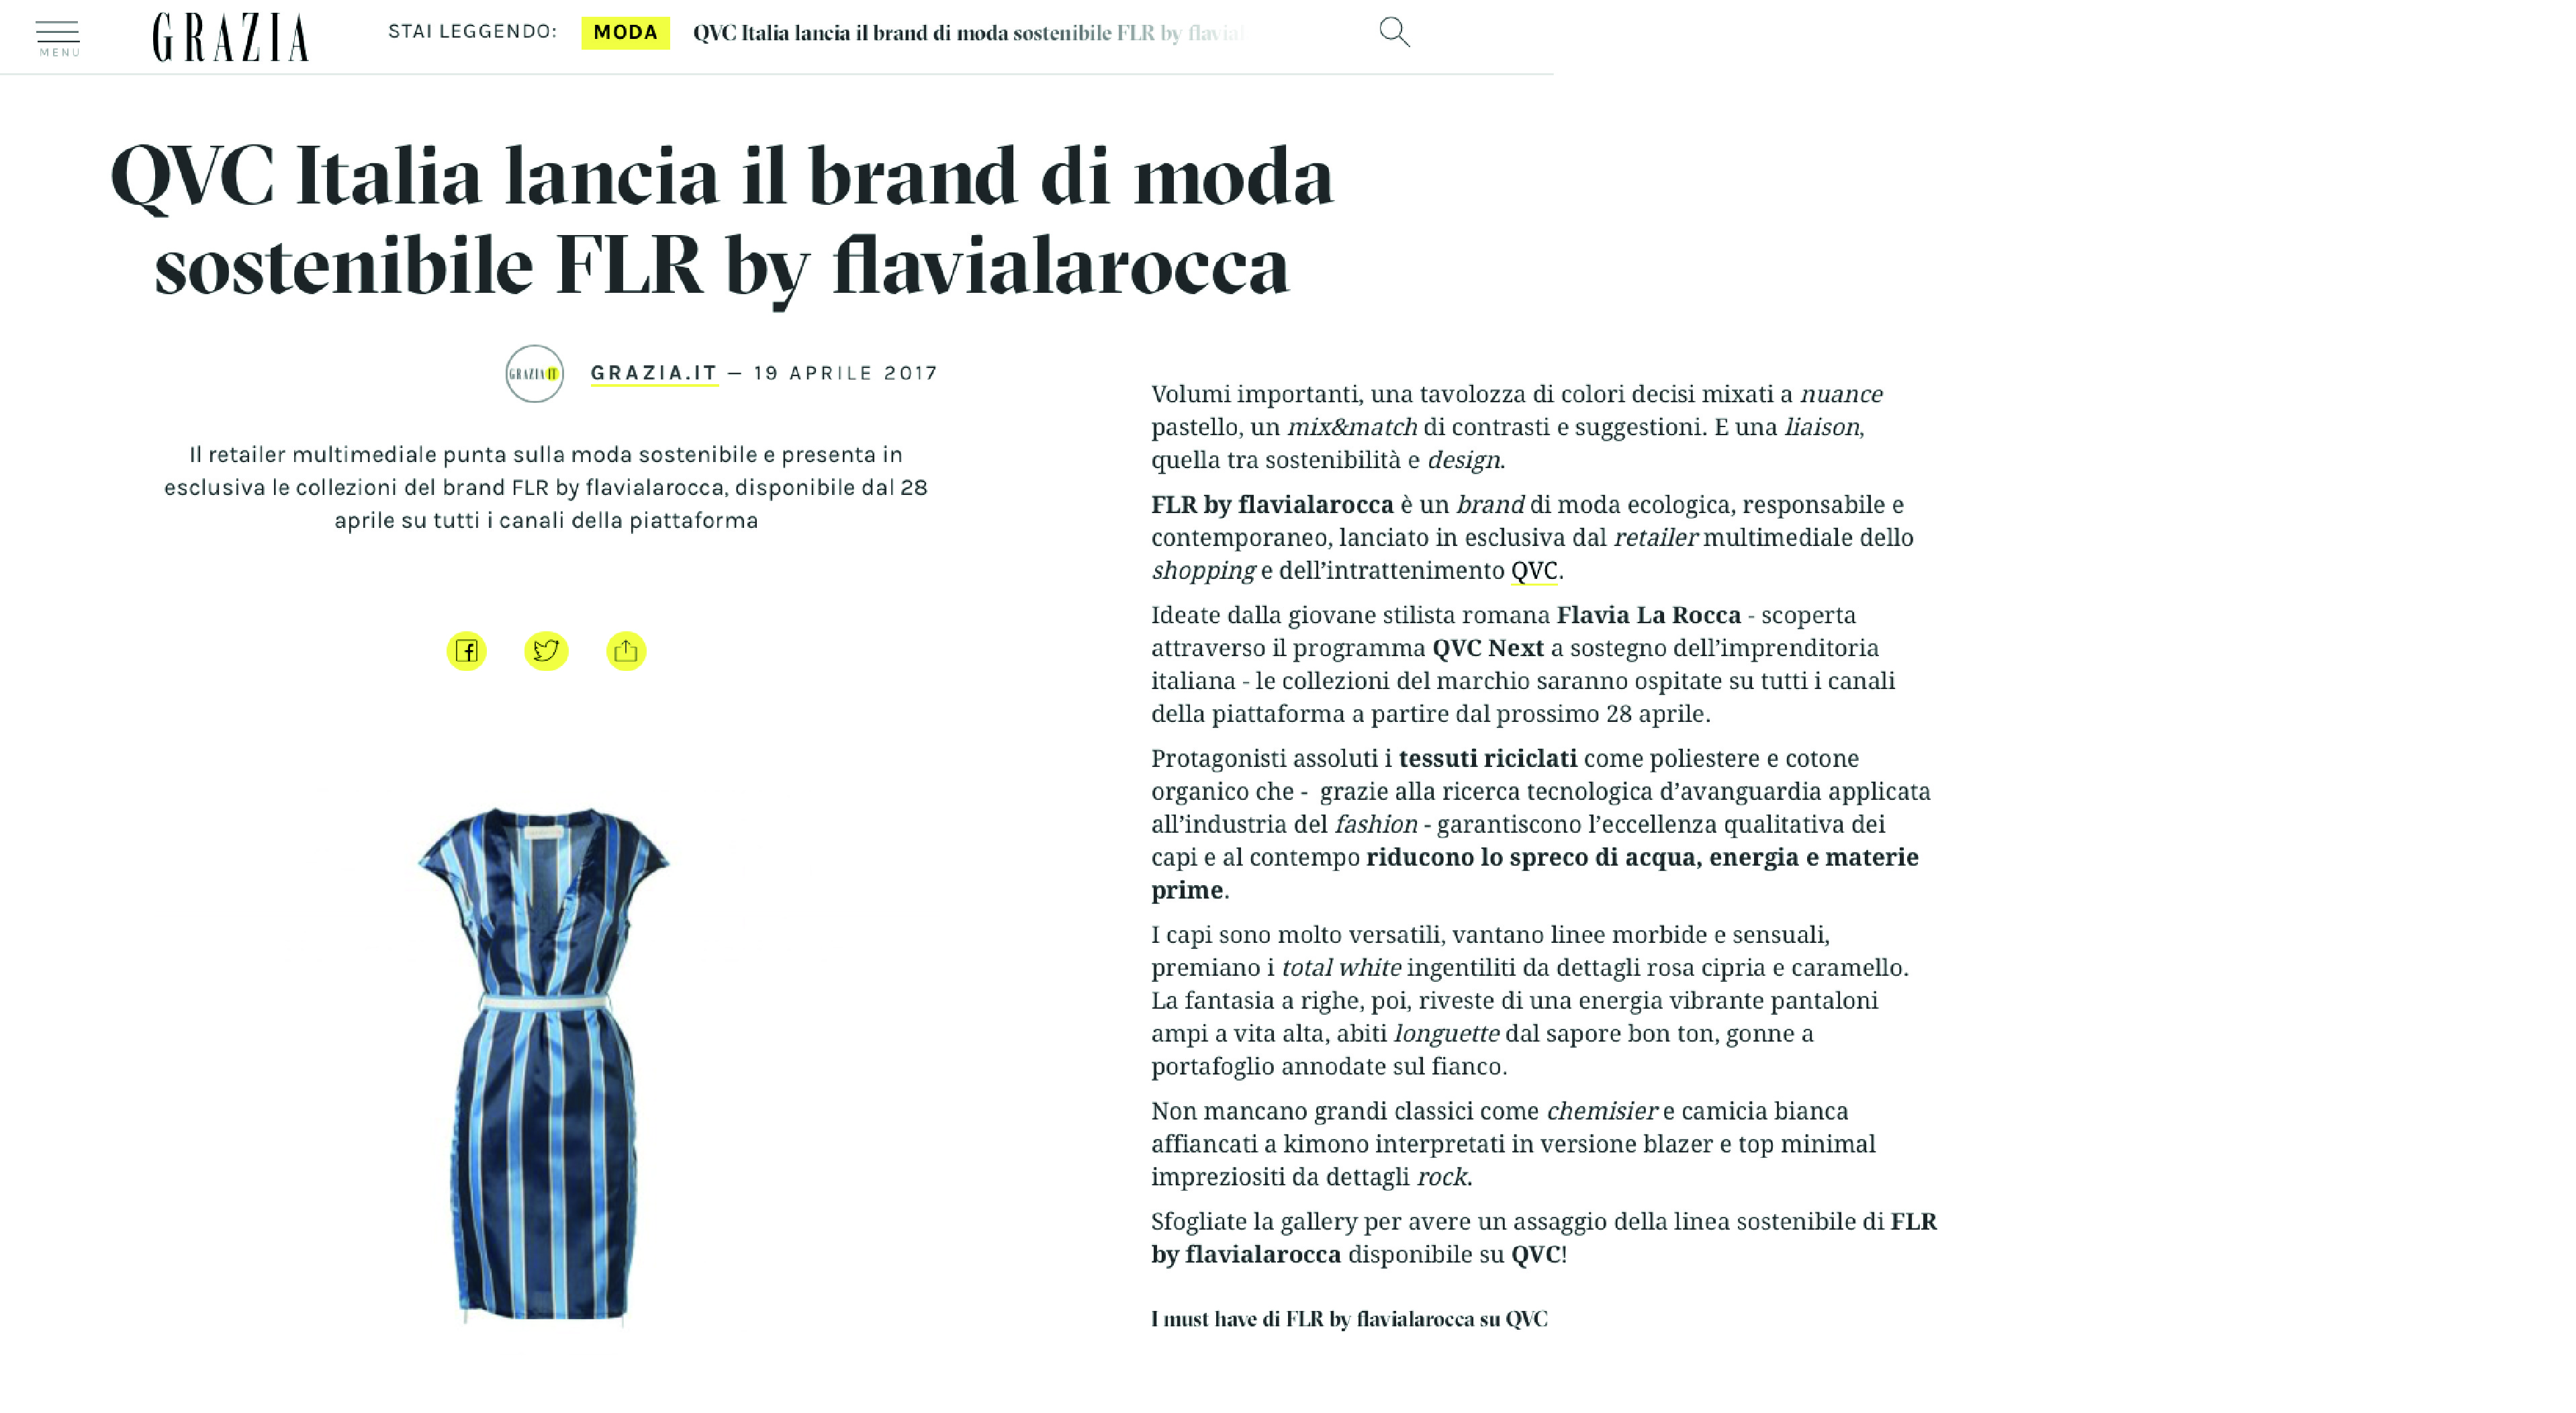 FLR by flavialarocca on Grazia.it